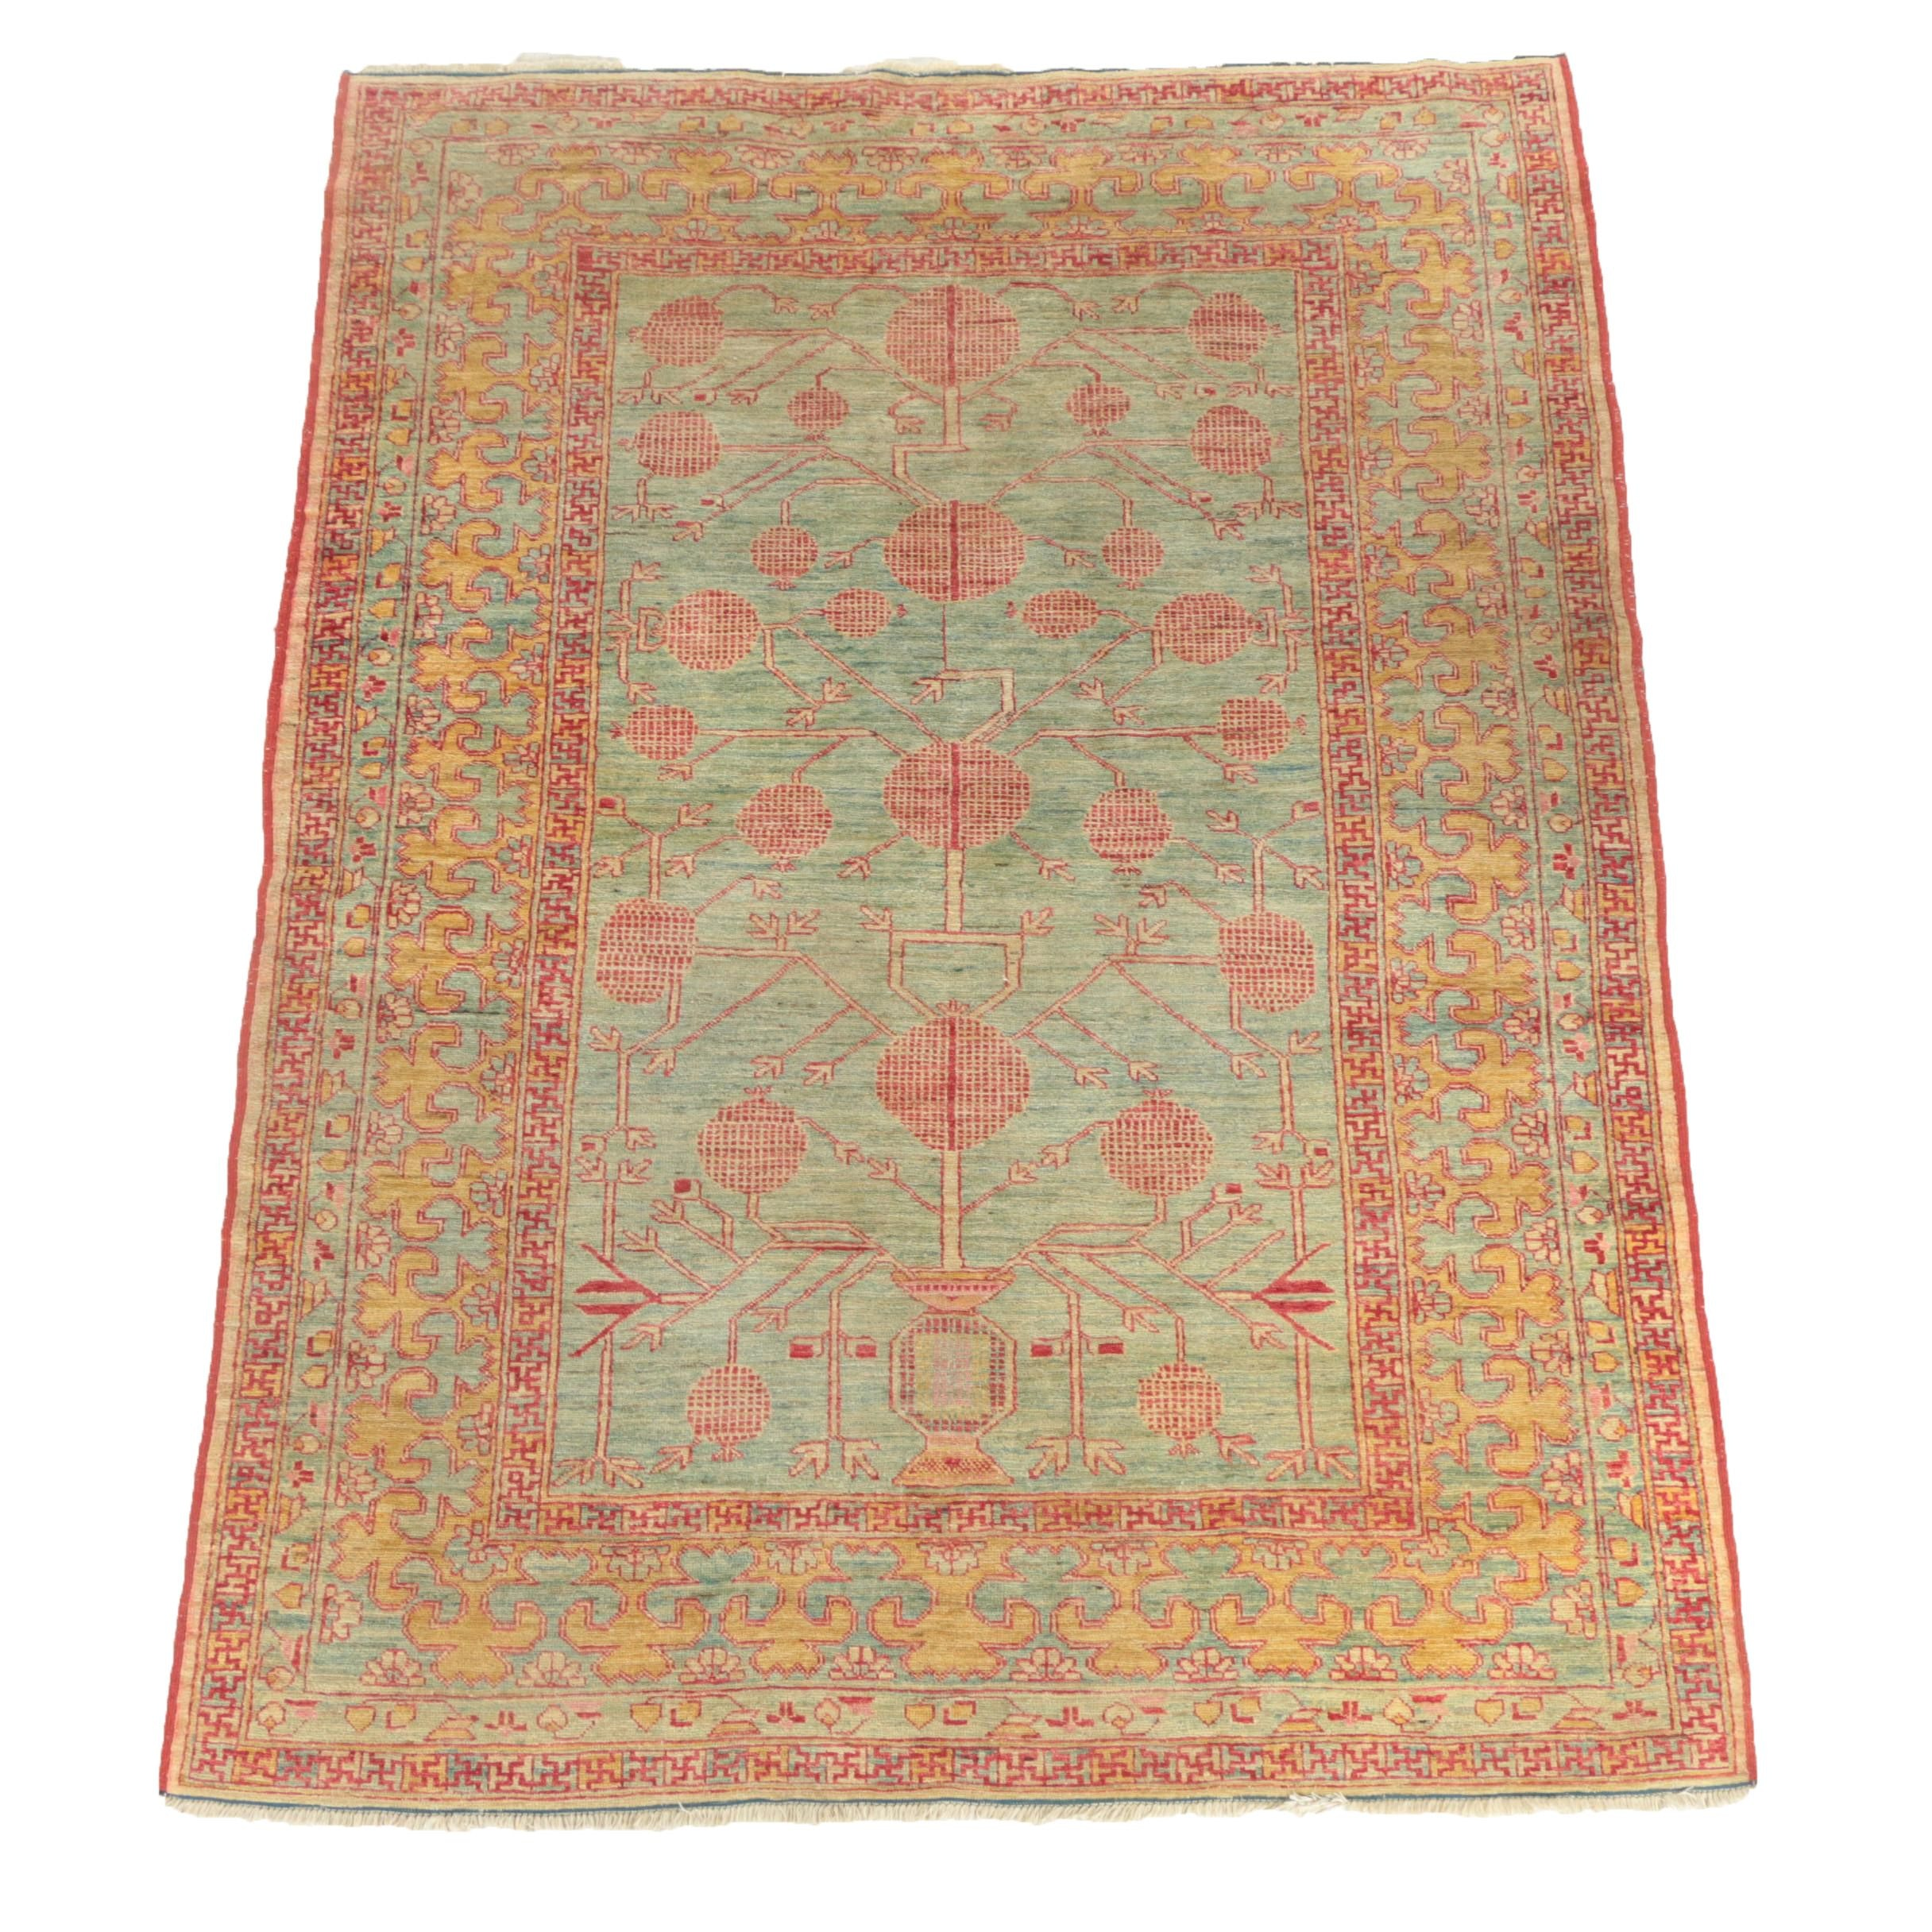 Hand-Knotted Turkestan Khotan Pomegranate Area Rug